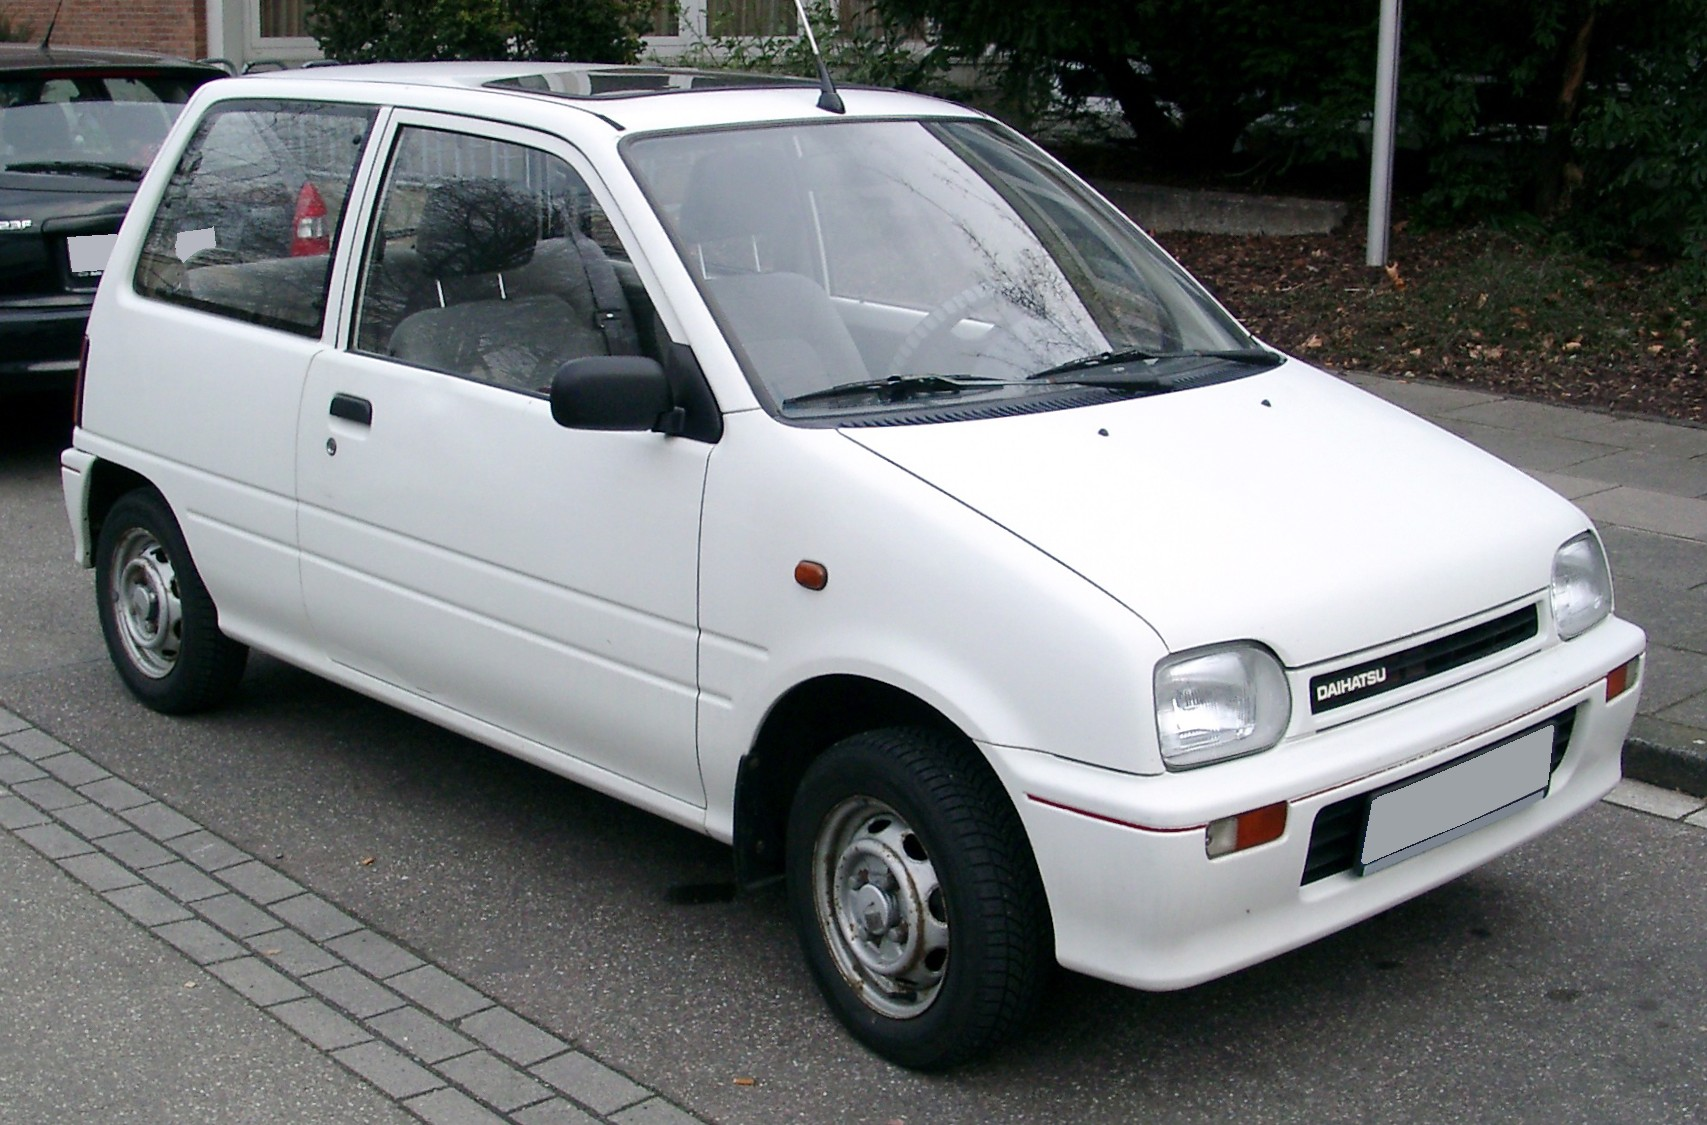 Top 5 Reasons Why The Daihatsu Cuore Is Better Than The